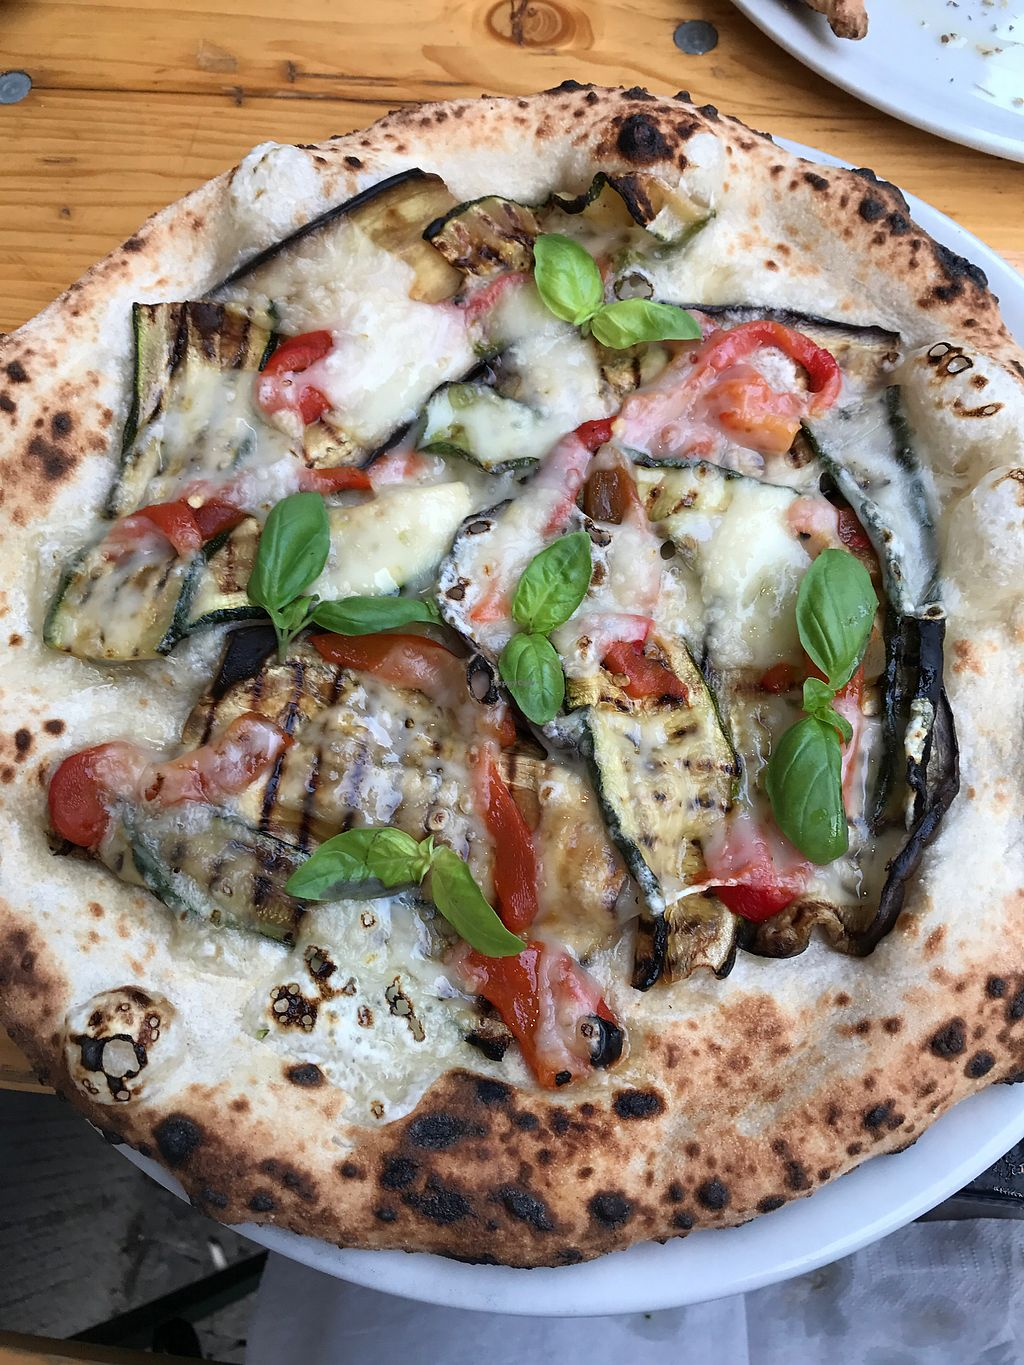 """Photo of La Stella Nera  by <a href=""""/members/profile/KittyVelour"""">KittyVelour</a> <br/>grilled veggie pizza <br/> July 6, 2017  - <a href='/contact/abuse/image/74041/277228'>Report</a>"""